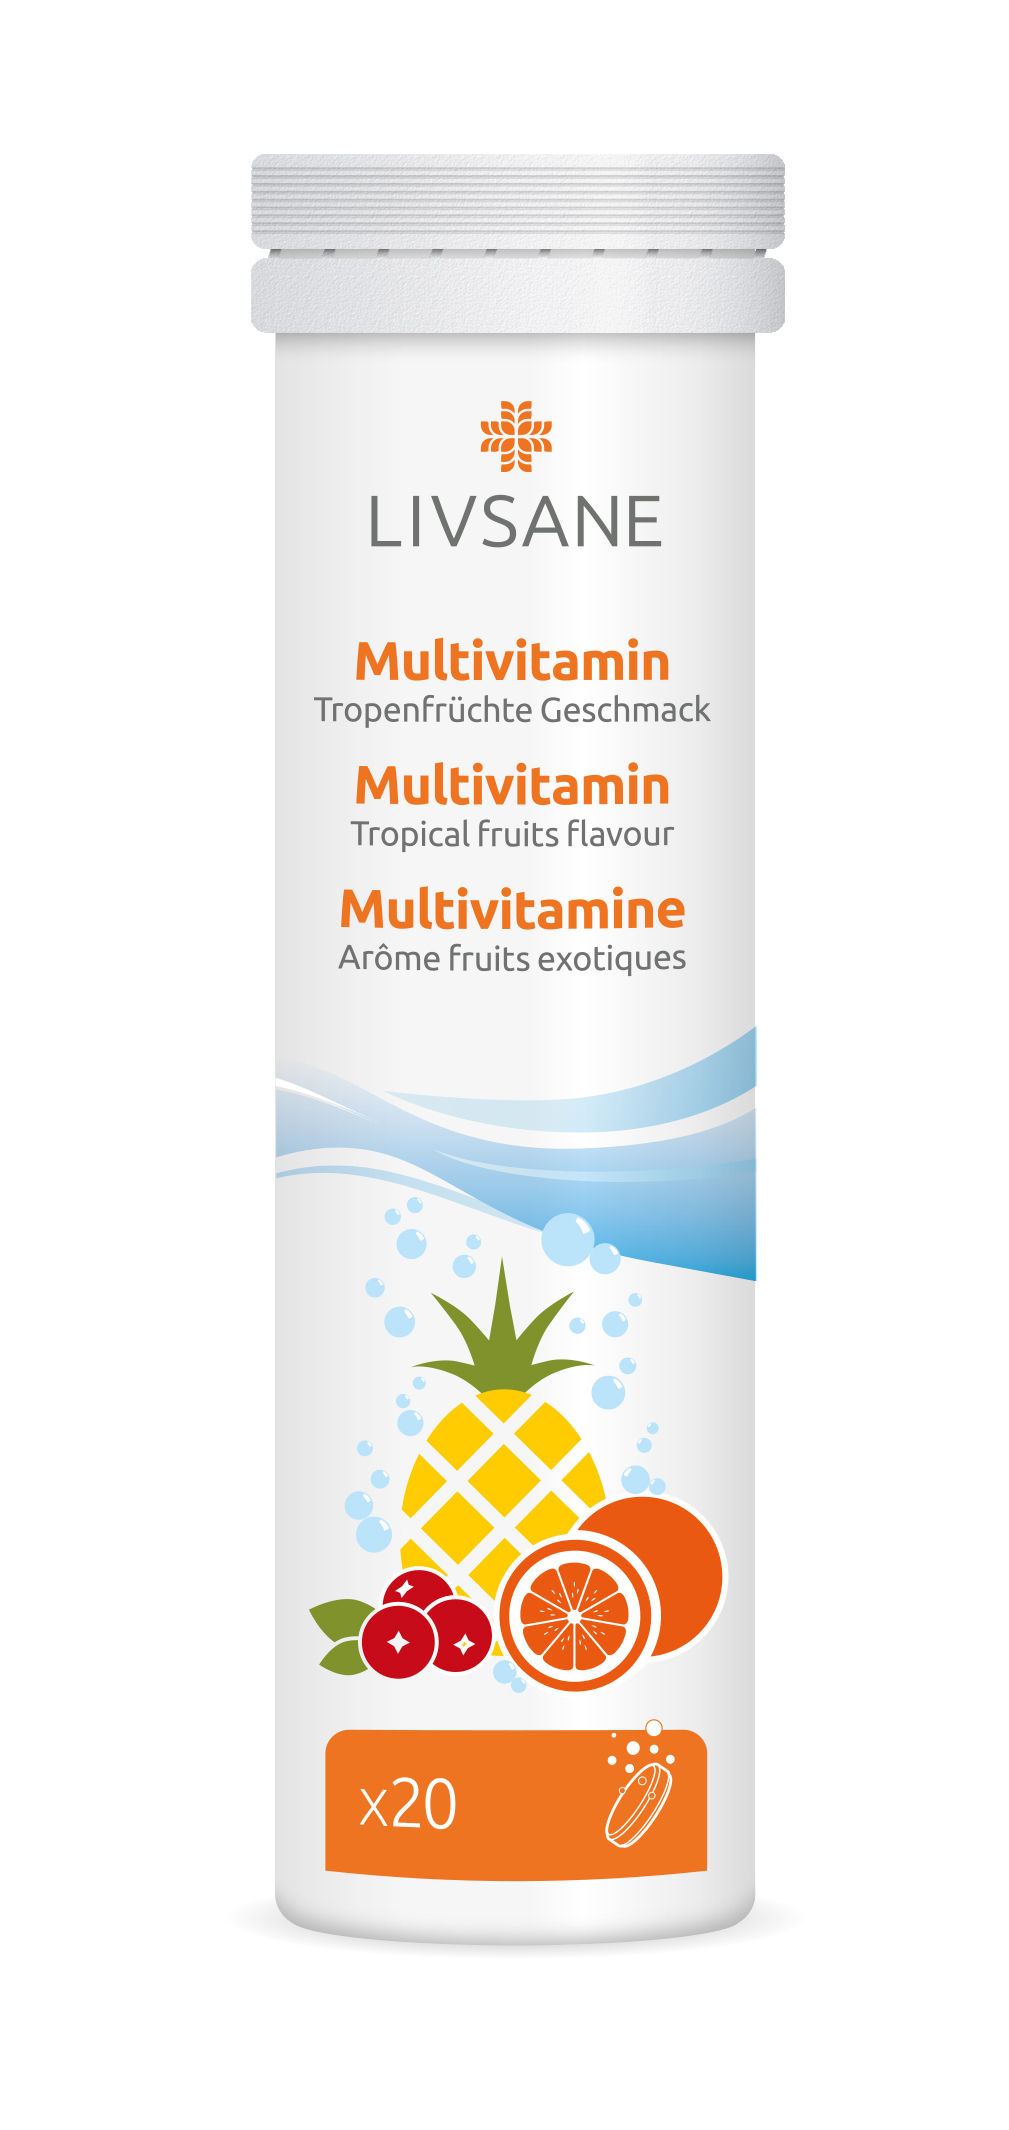 LIVSANE Multivitamin šumivé tablety 20 ks Image